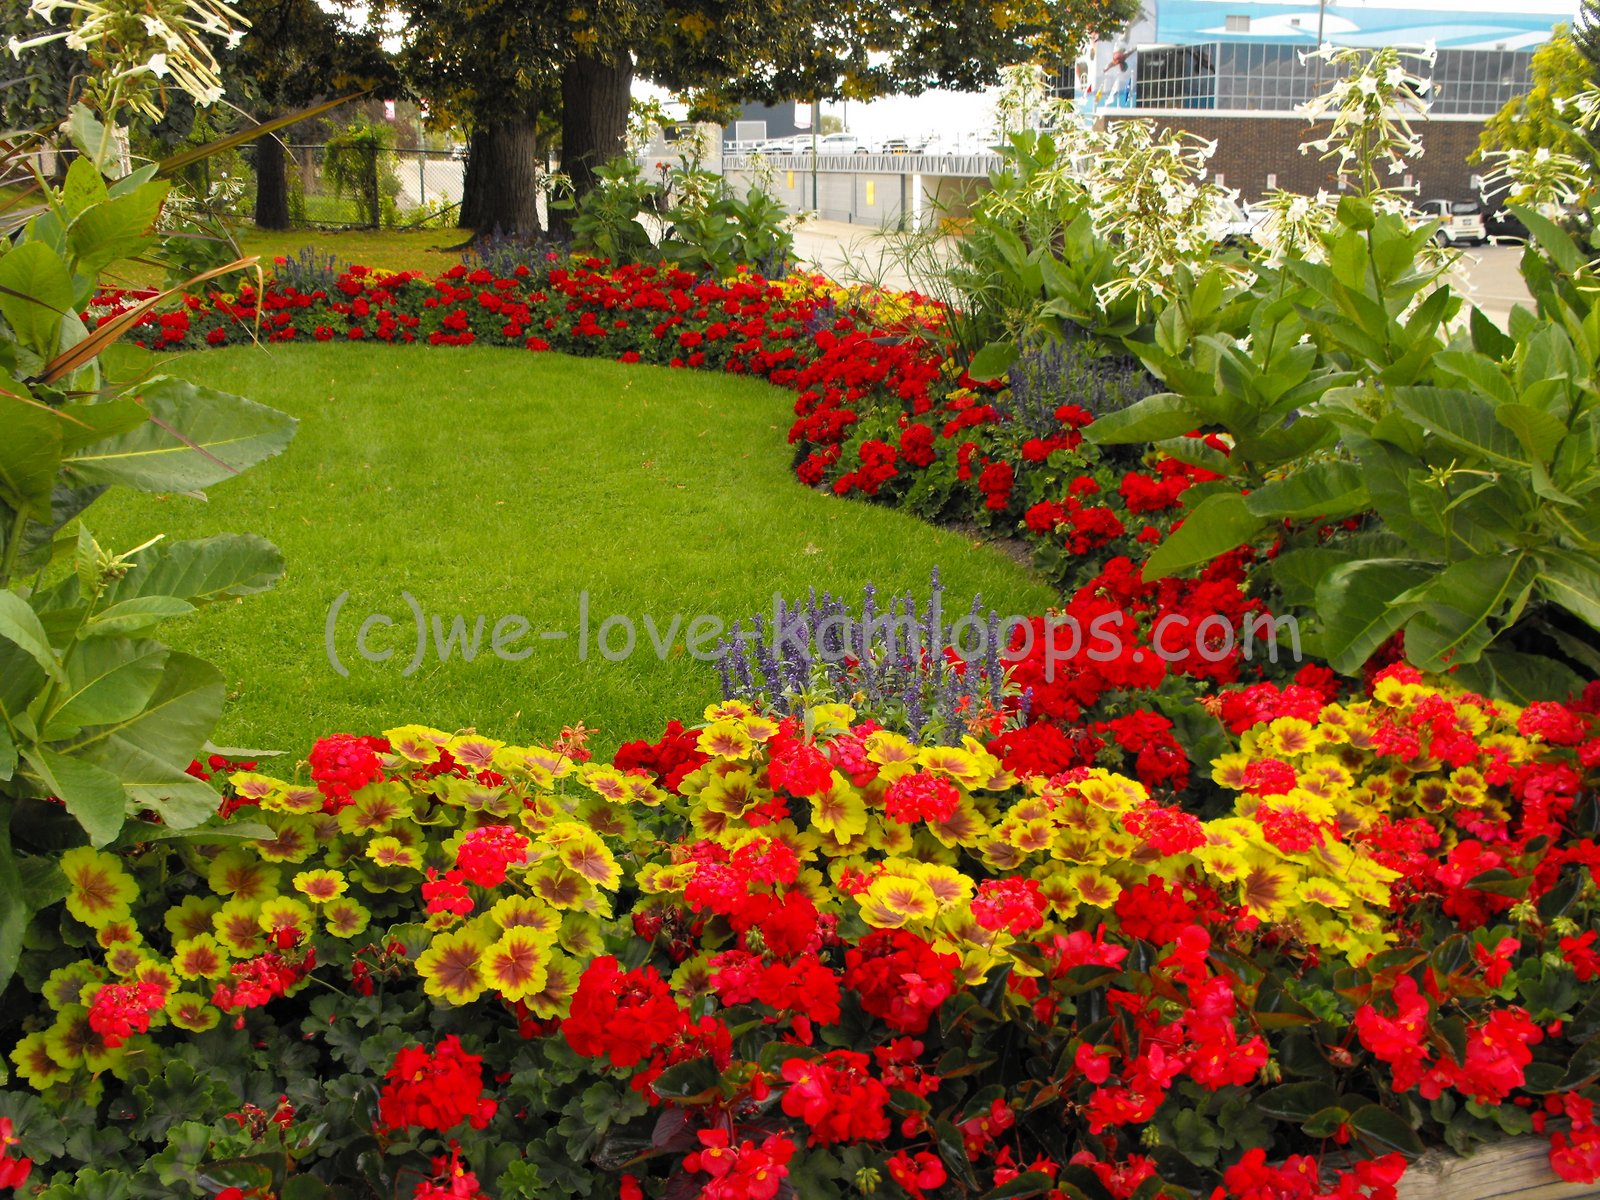 We love kamloops communities in bloom kamloops bc canada for Garden design ideas canada